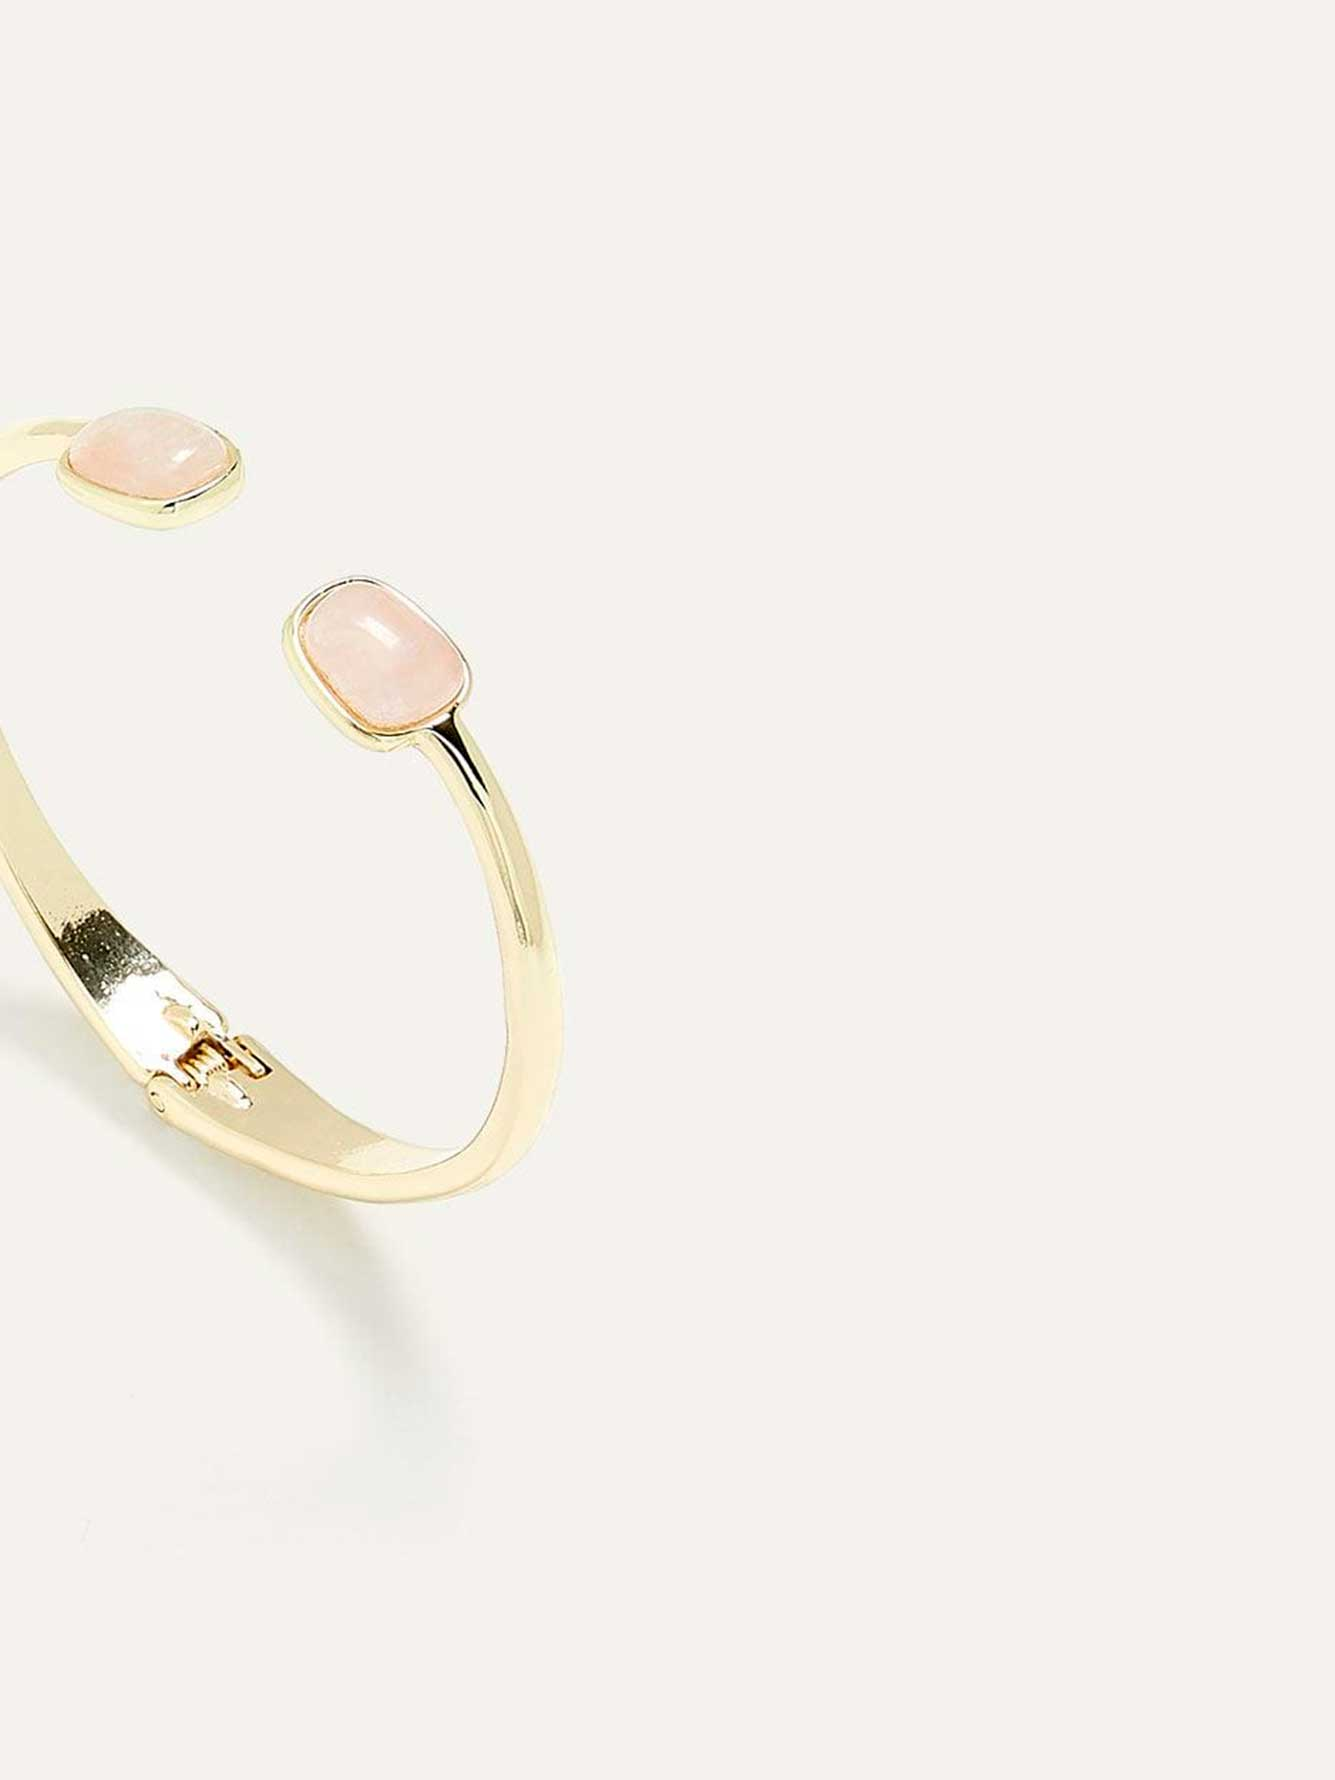 Hinged Golden Bracelet with Real Quartz Stones